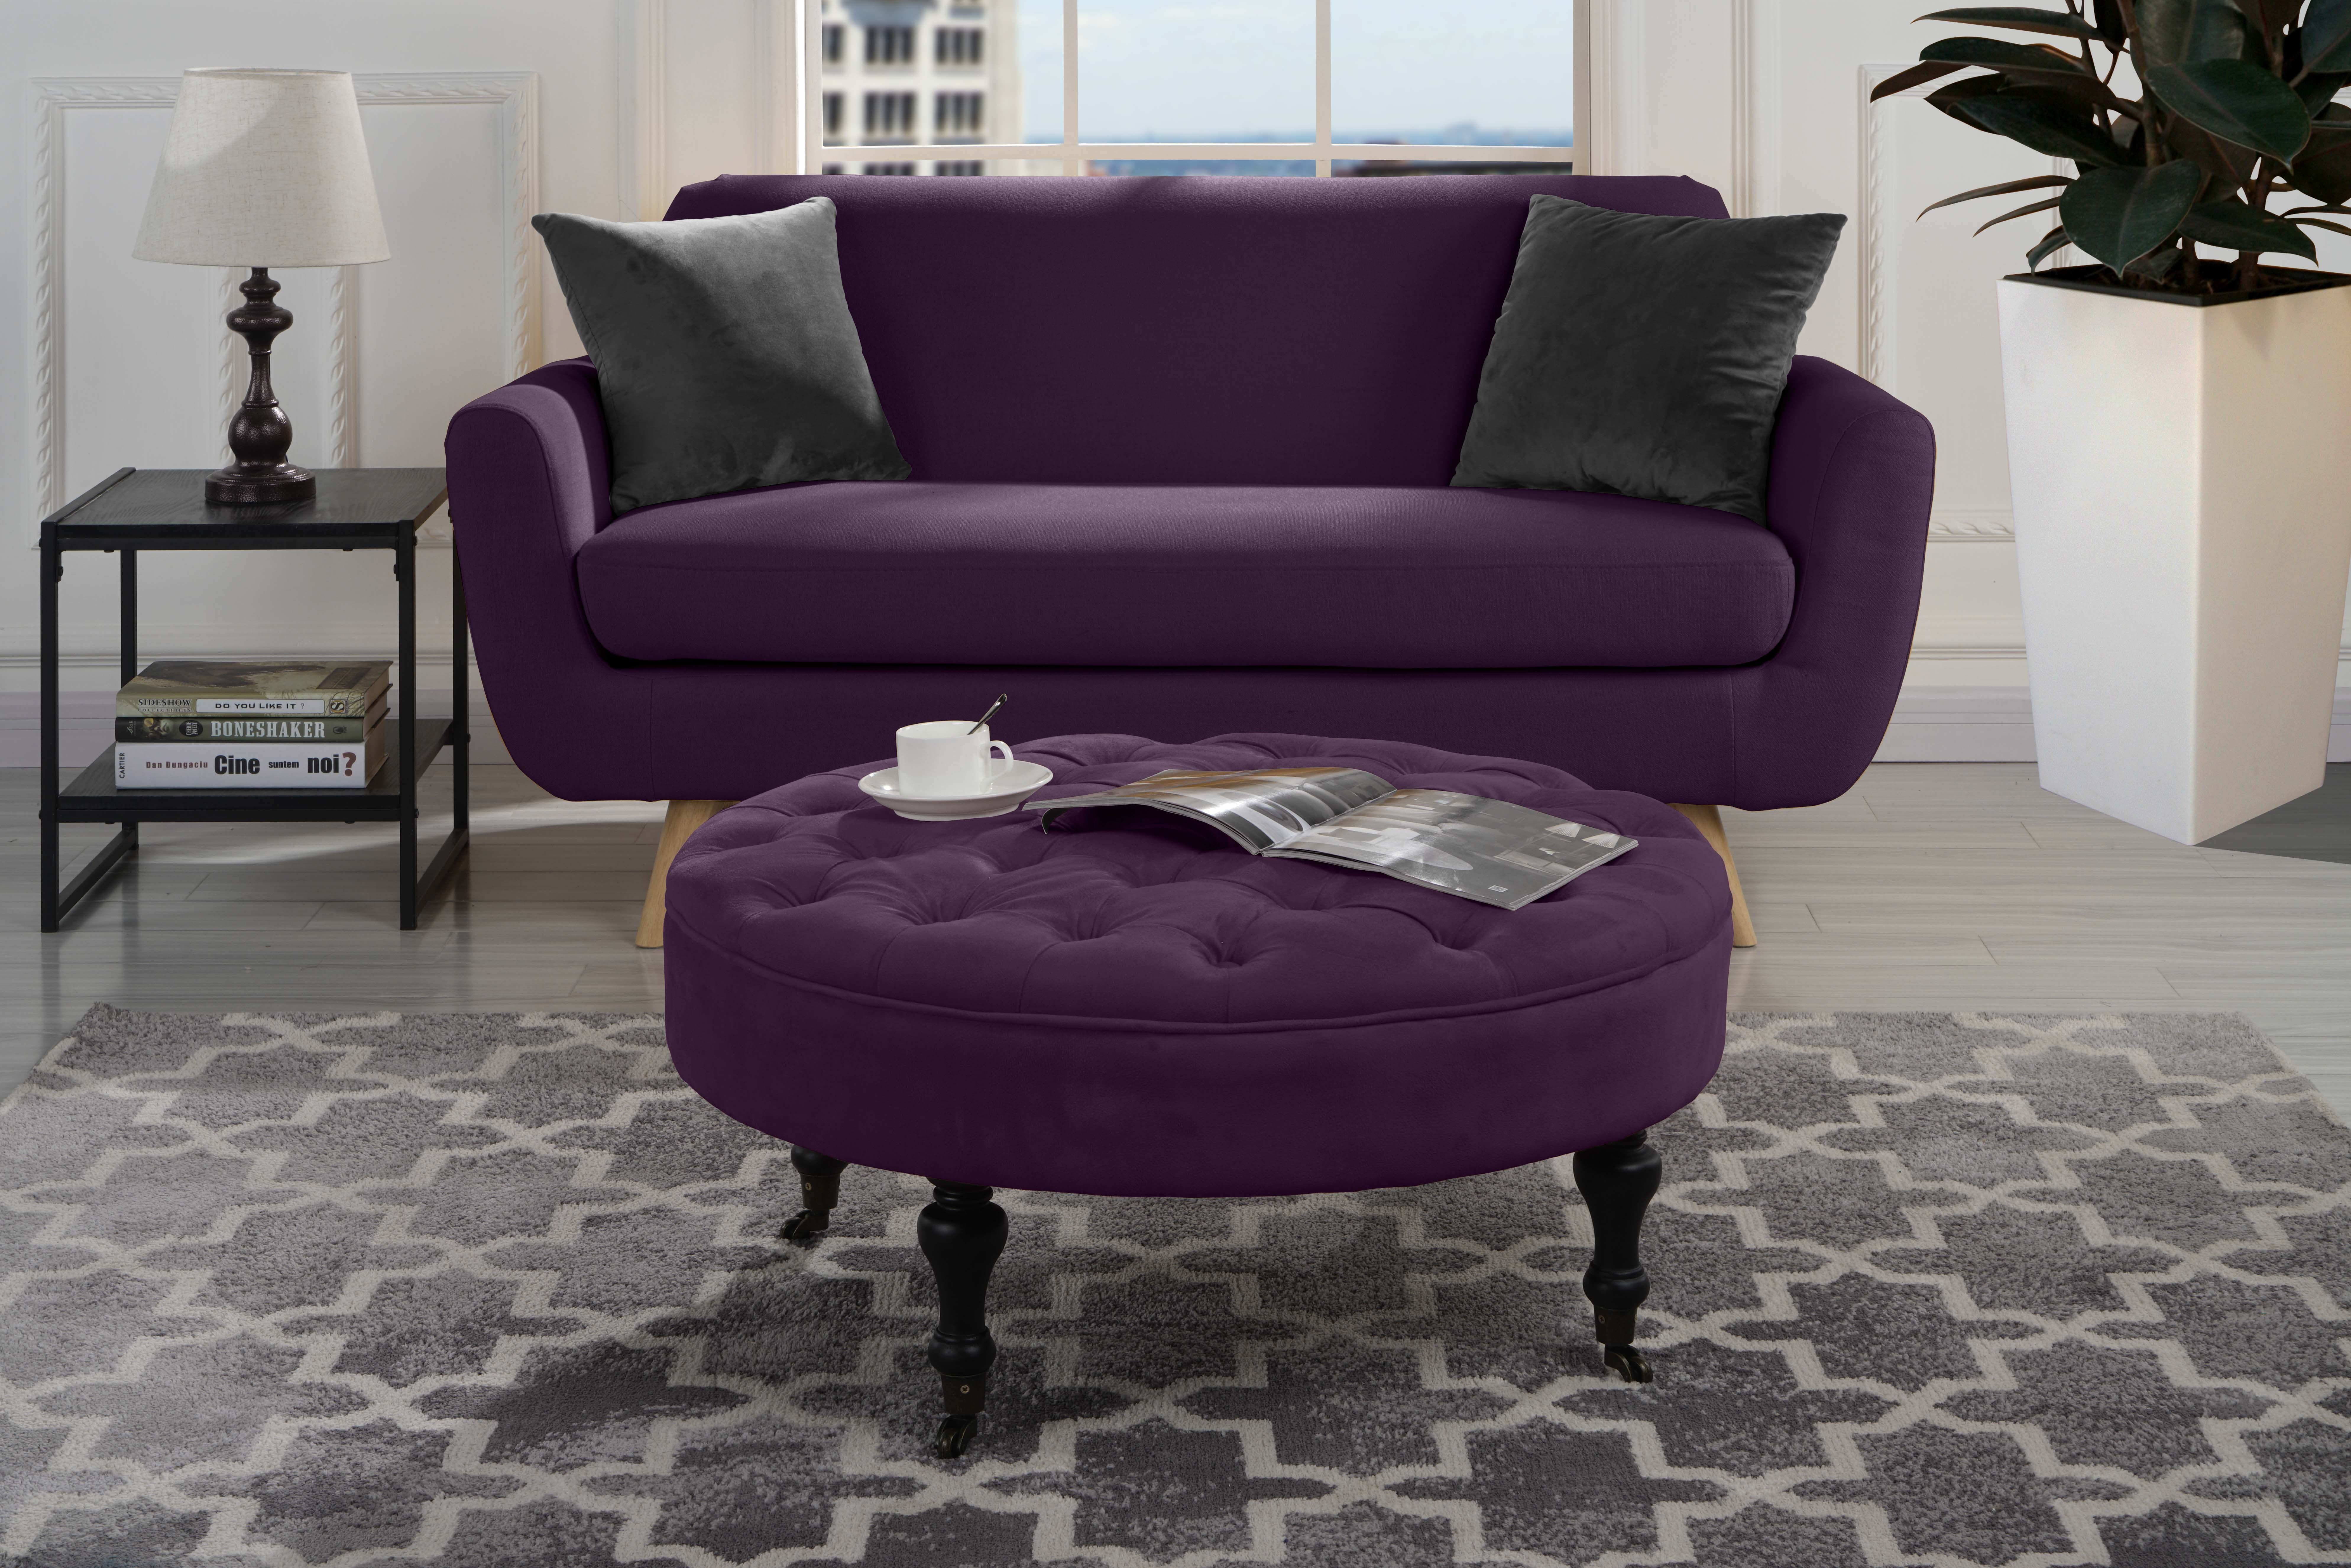 Modern Round Tufted Microfiber Coffee Table W Casters Ottoman W